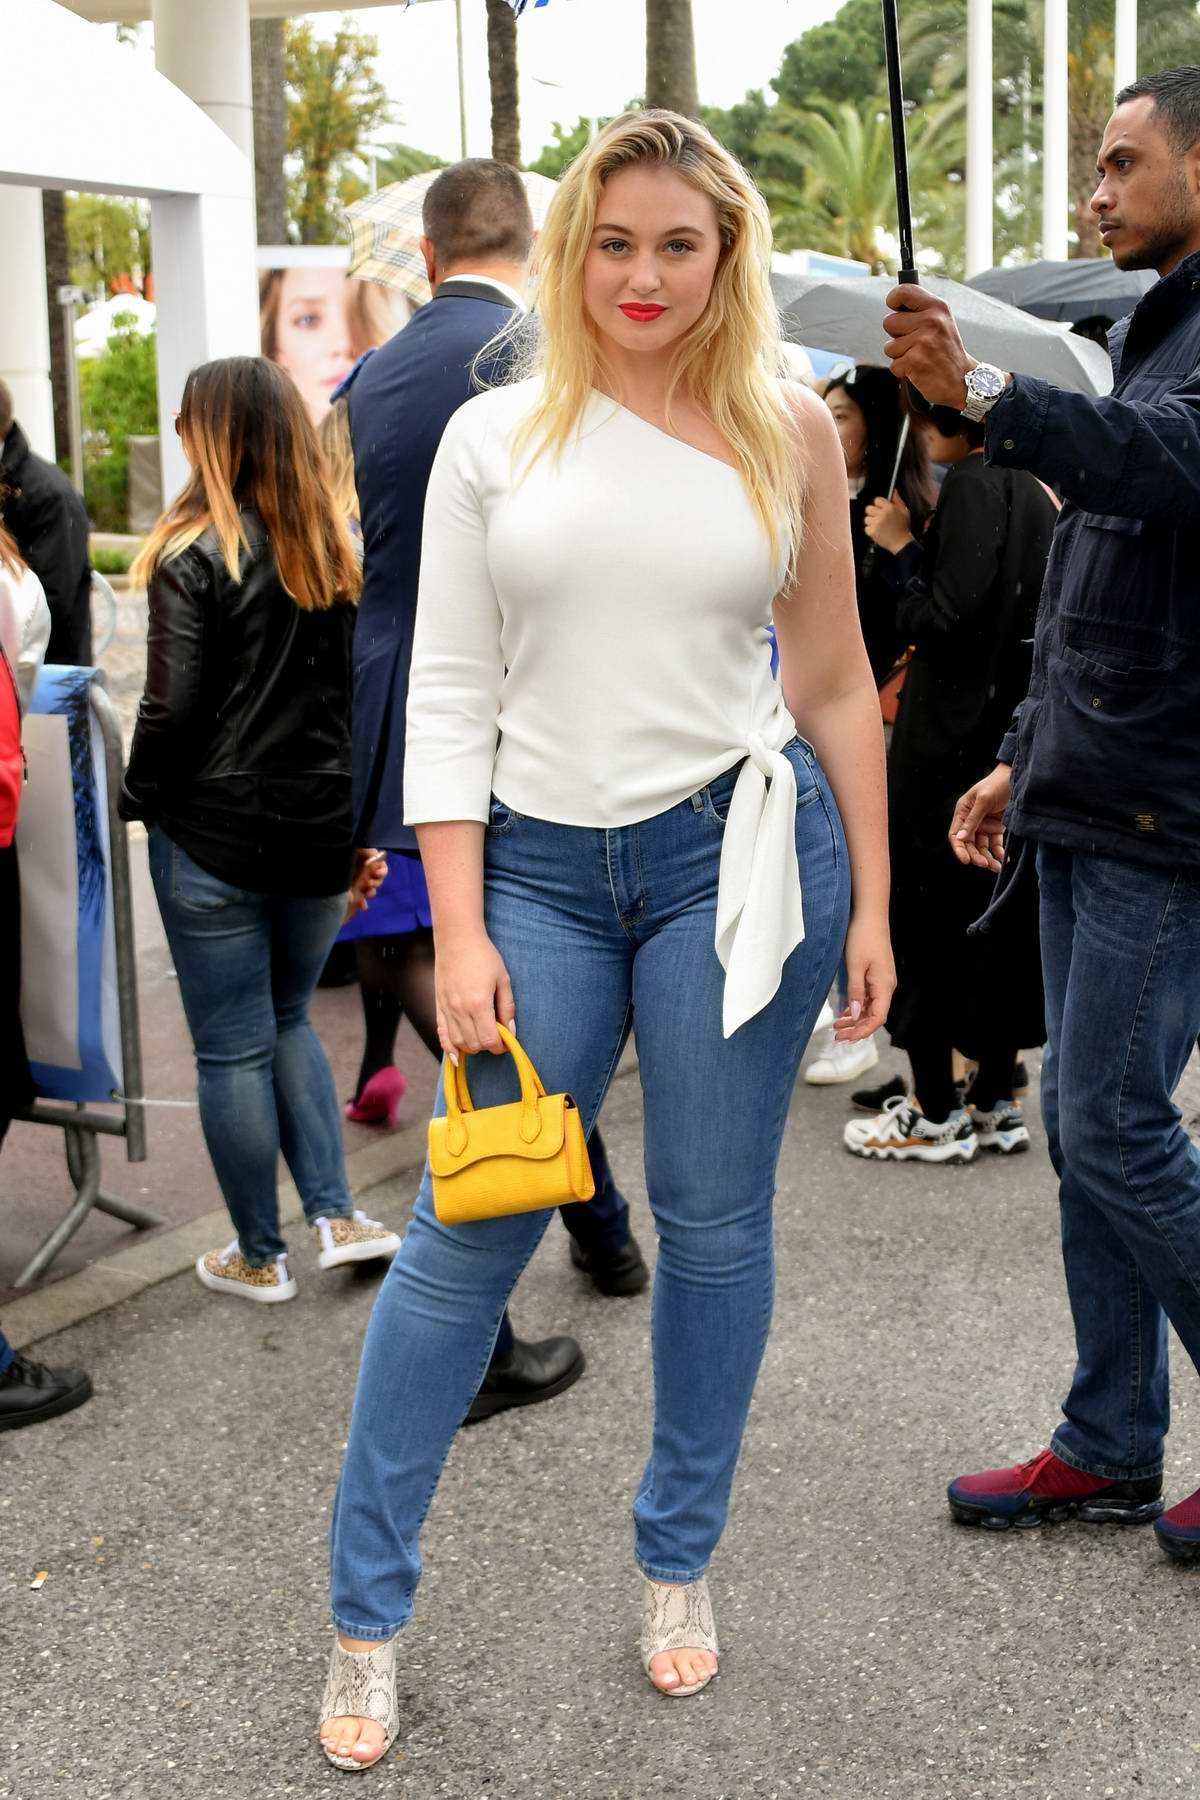 Iskra Lawrence looks amazing in a white top and tight blue jeans while out on the Croisette during the 72nd Cannes Film Festival in Cannes, France